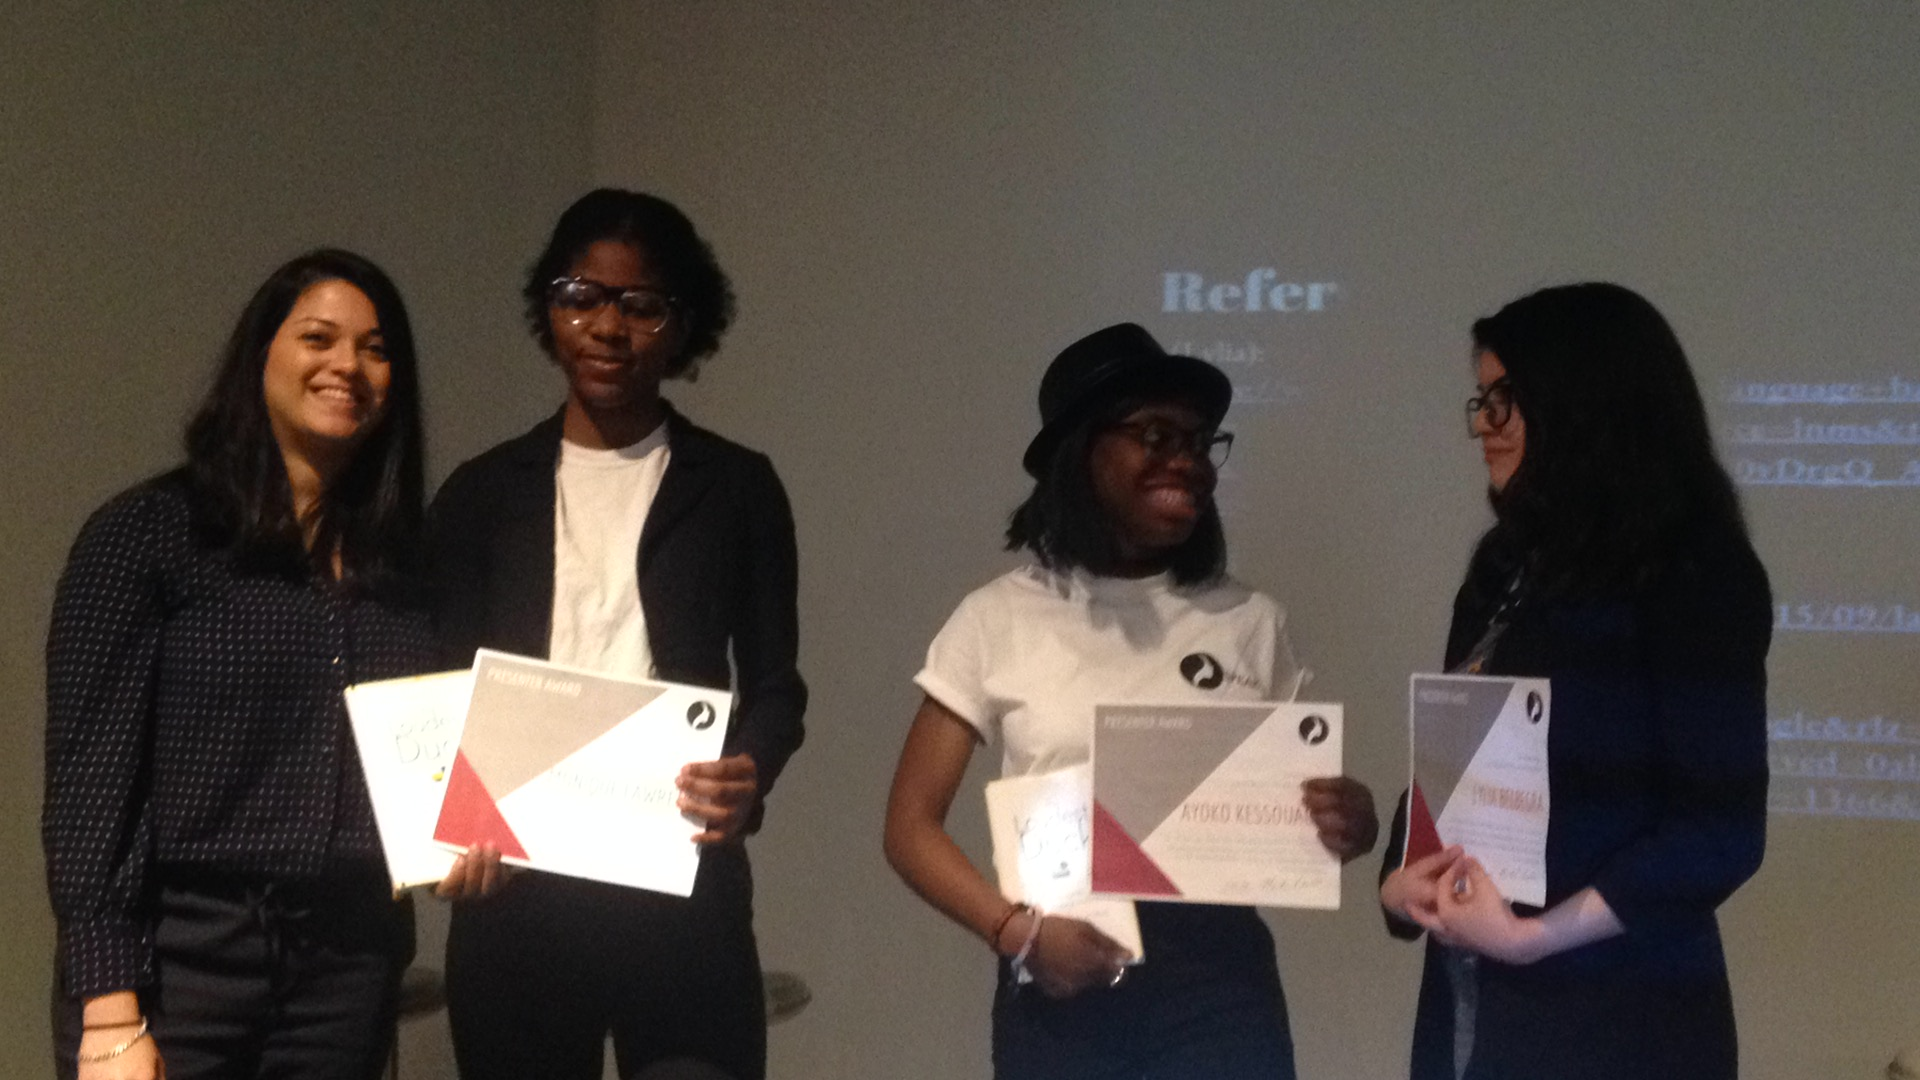 Student presenters received recognition for presenting their immigrant stories and experiences as girls of color.